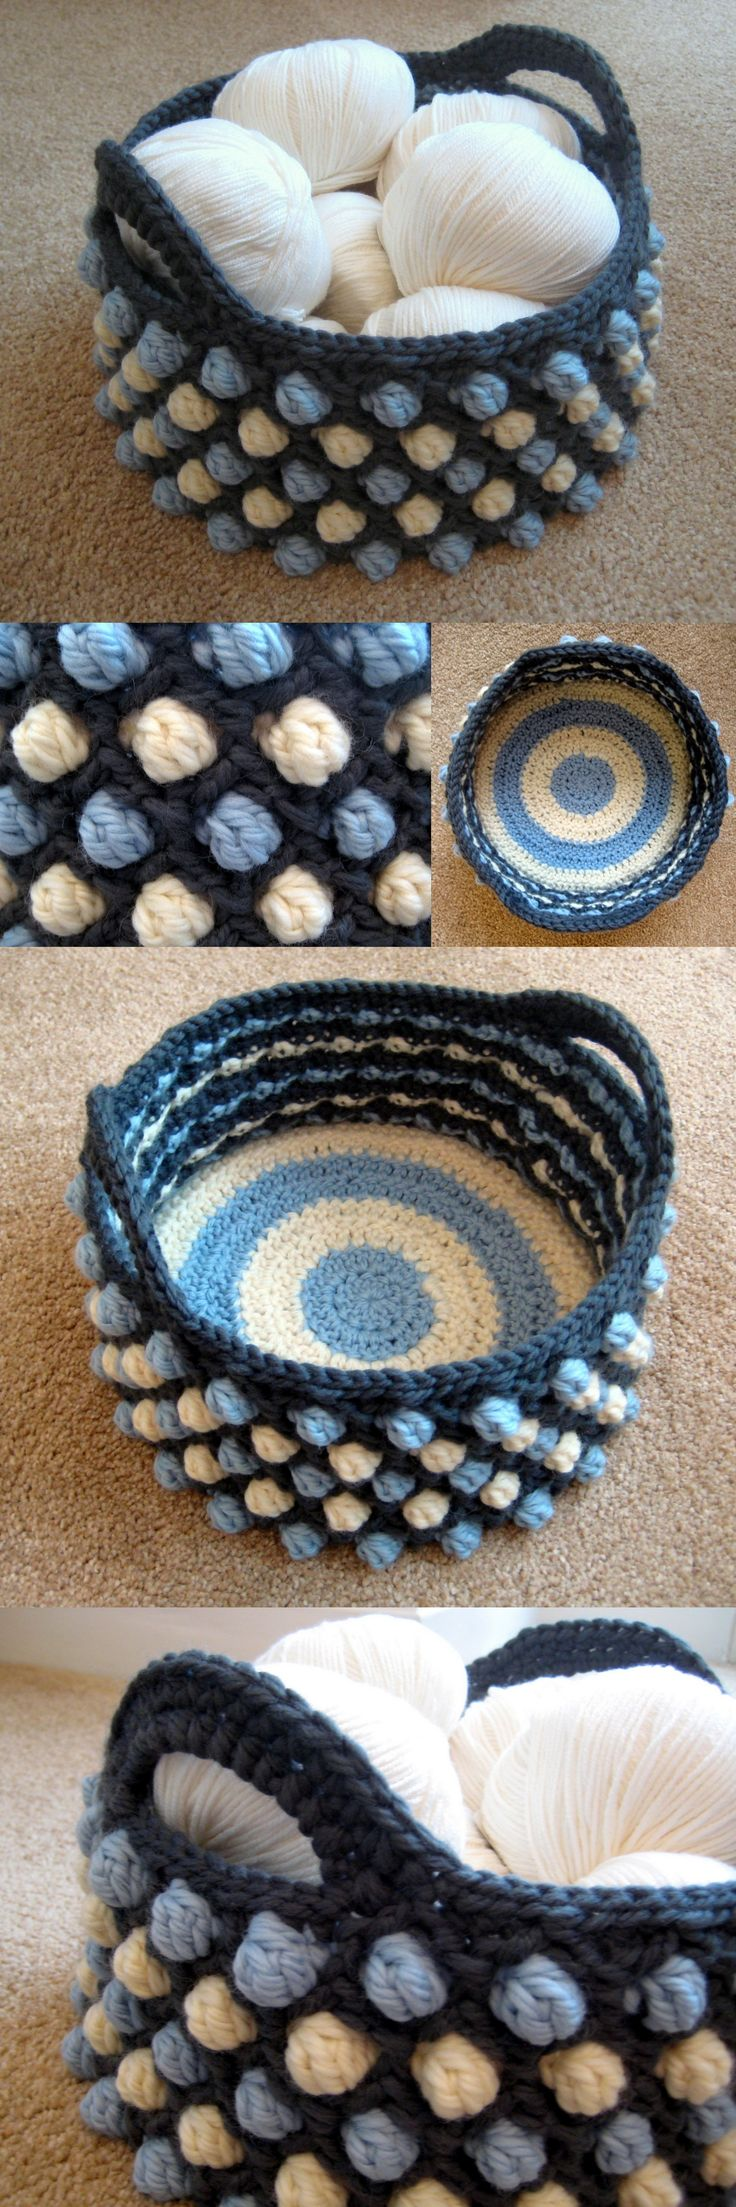 Honeycomb Pop Basket. Beginner's perfect crochet project. Make gorgeous honeycomb pop basket for storage and organization. Tutorial via